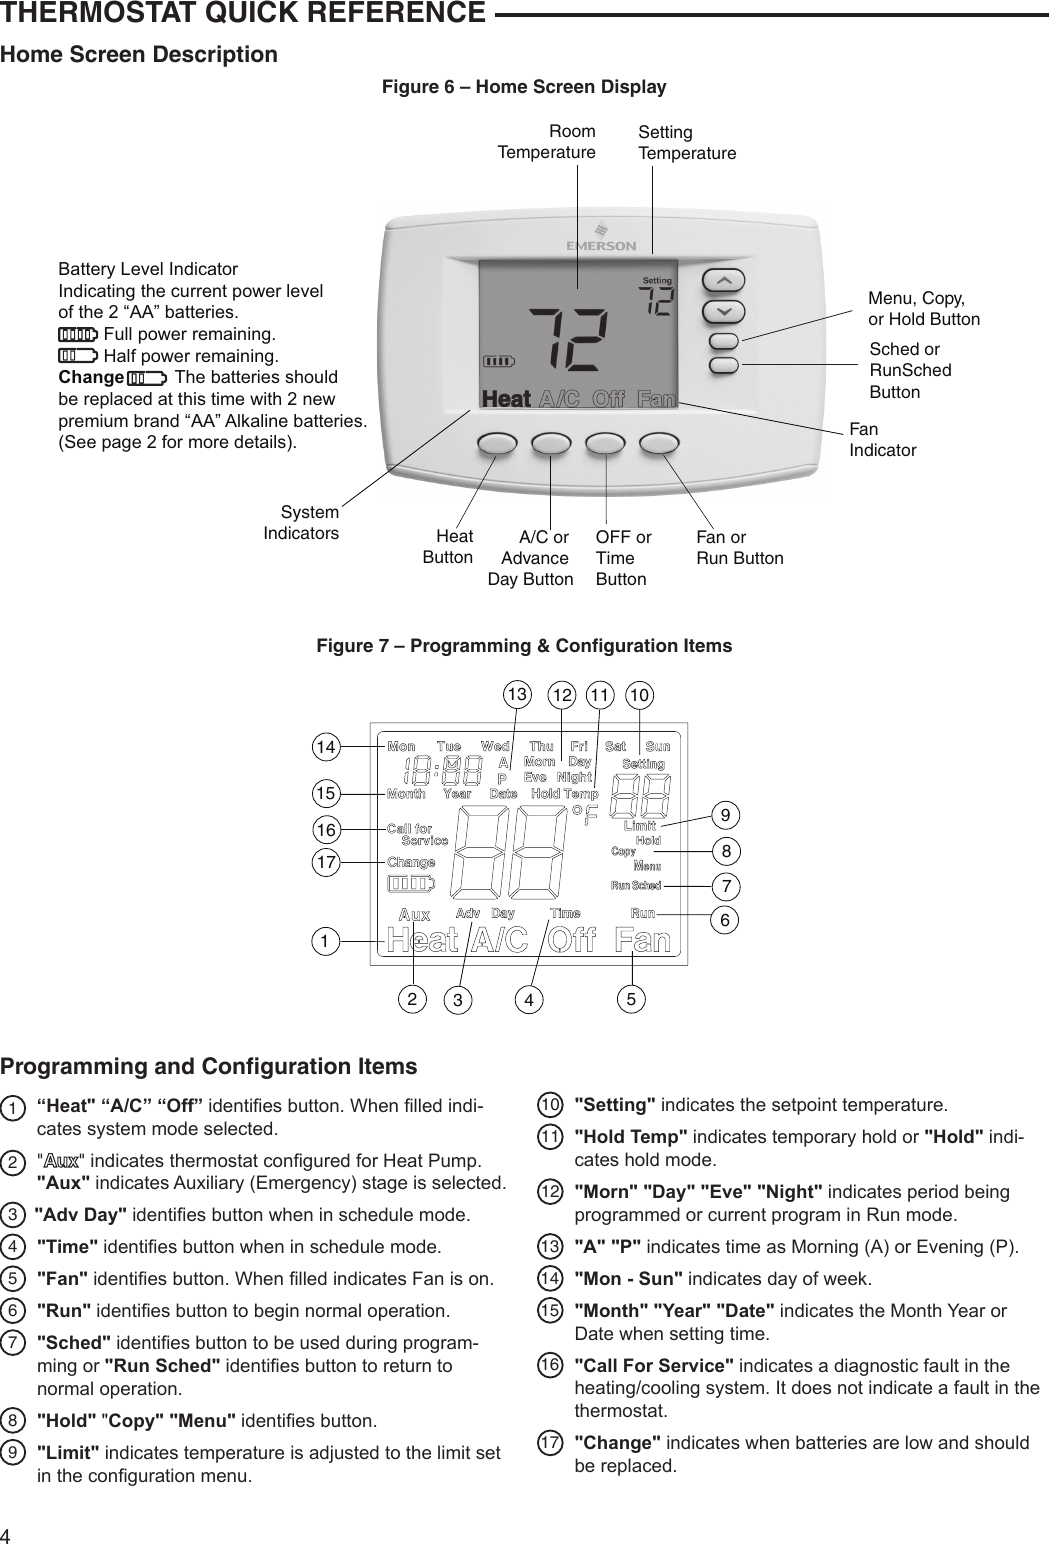 Double Pole Thermostat Wiring Diagram On Stats   With also 2003 Ta a Wiring Diagram together with Amana Heat Pump Thermostat Wiring Diagram also White Rodgers 1f56w 444 Wiring Diagram likewise Honeywell Thermostat Th8320u1008 Wiring Diagram. on honeywell wi fi thermostat wiring